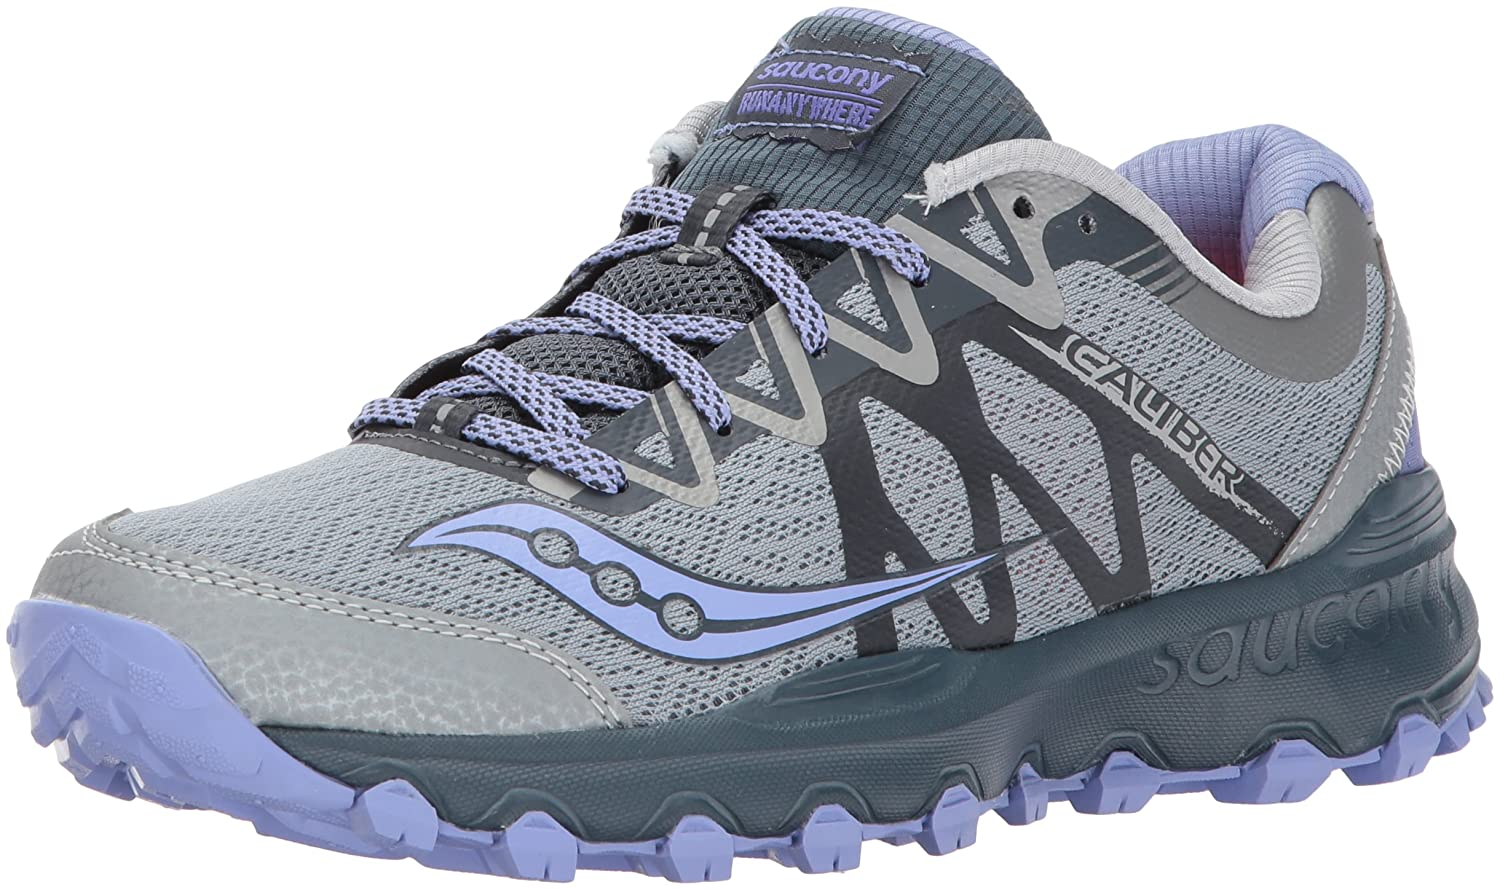 Saucony Women's Grid Caliber TR Trail Runner Shoe B01MQYS2CI 7 B(M) US|Grey Purple